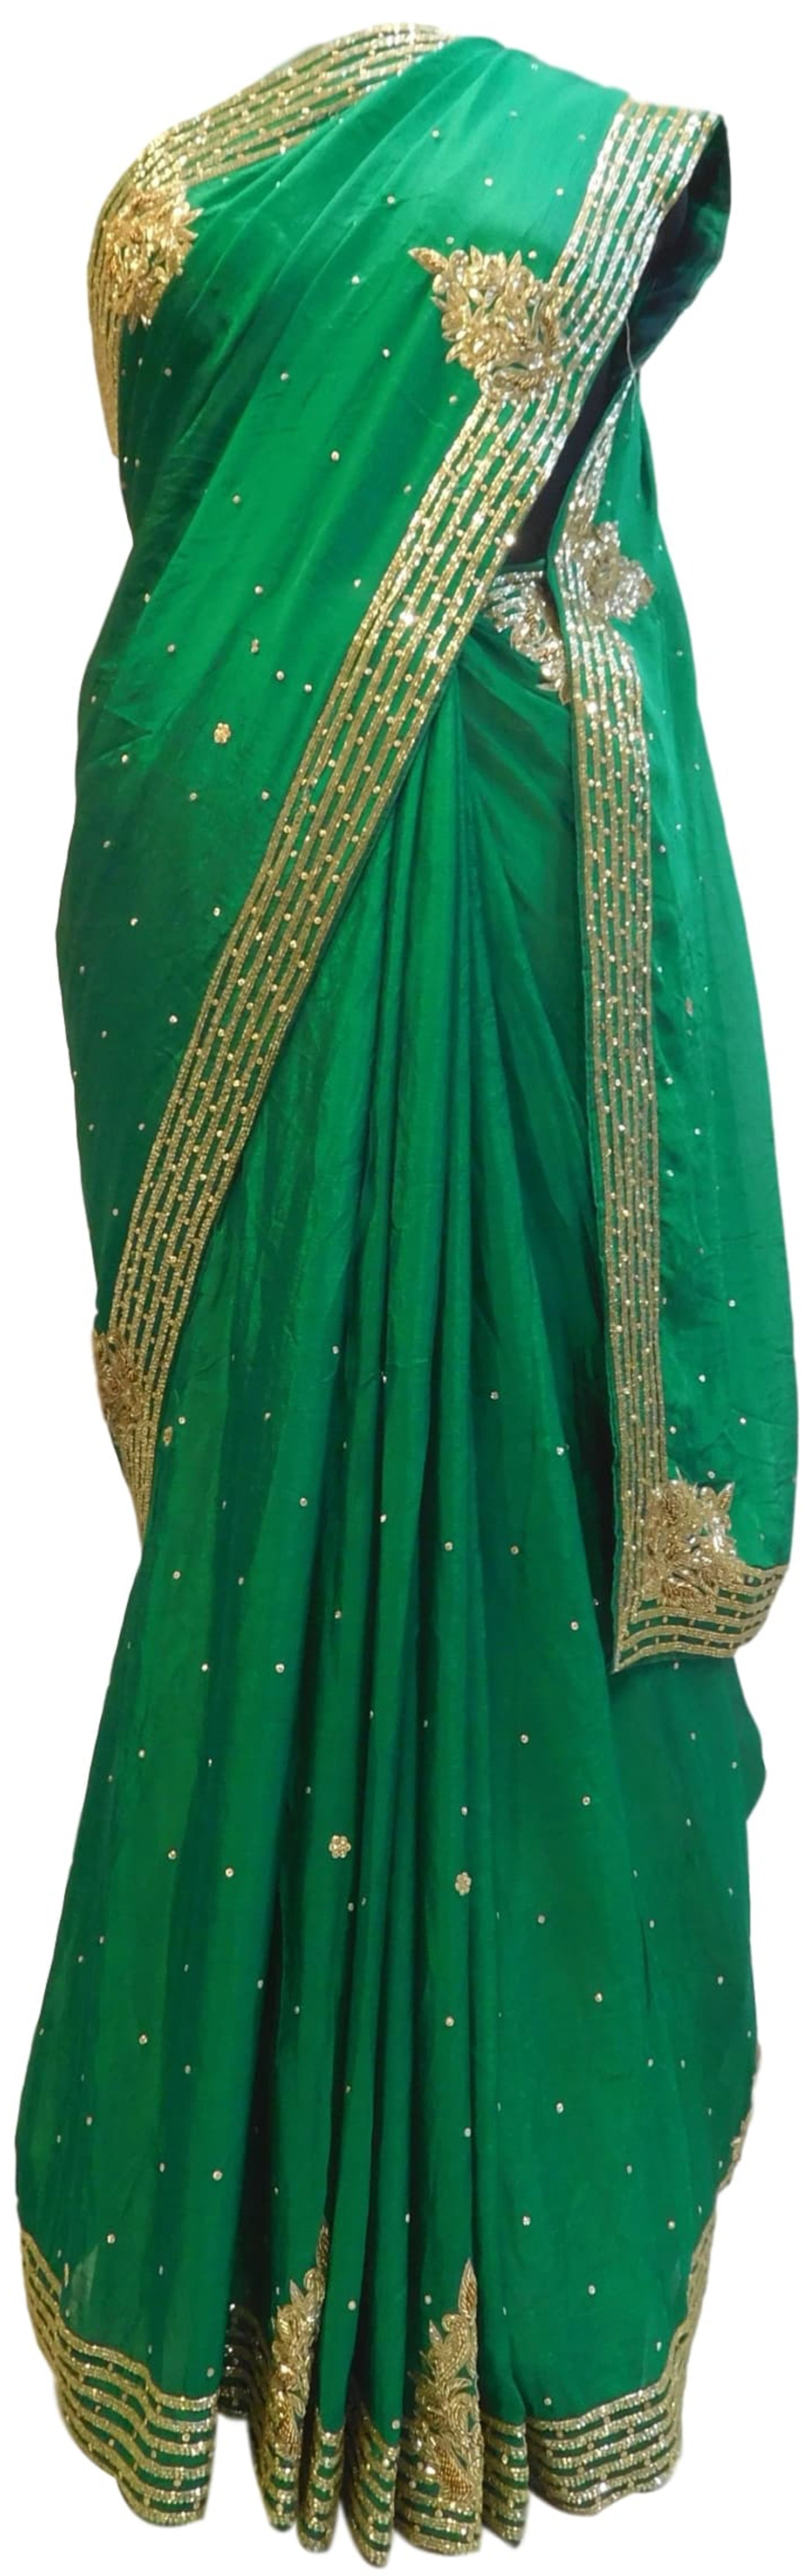 Green Designer Crepe (Chinon) Hand Embroidery Cutdana Beads Stone Work Saree Sari